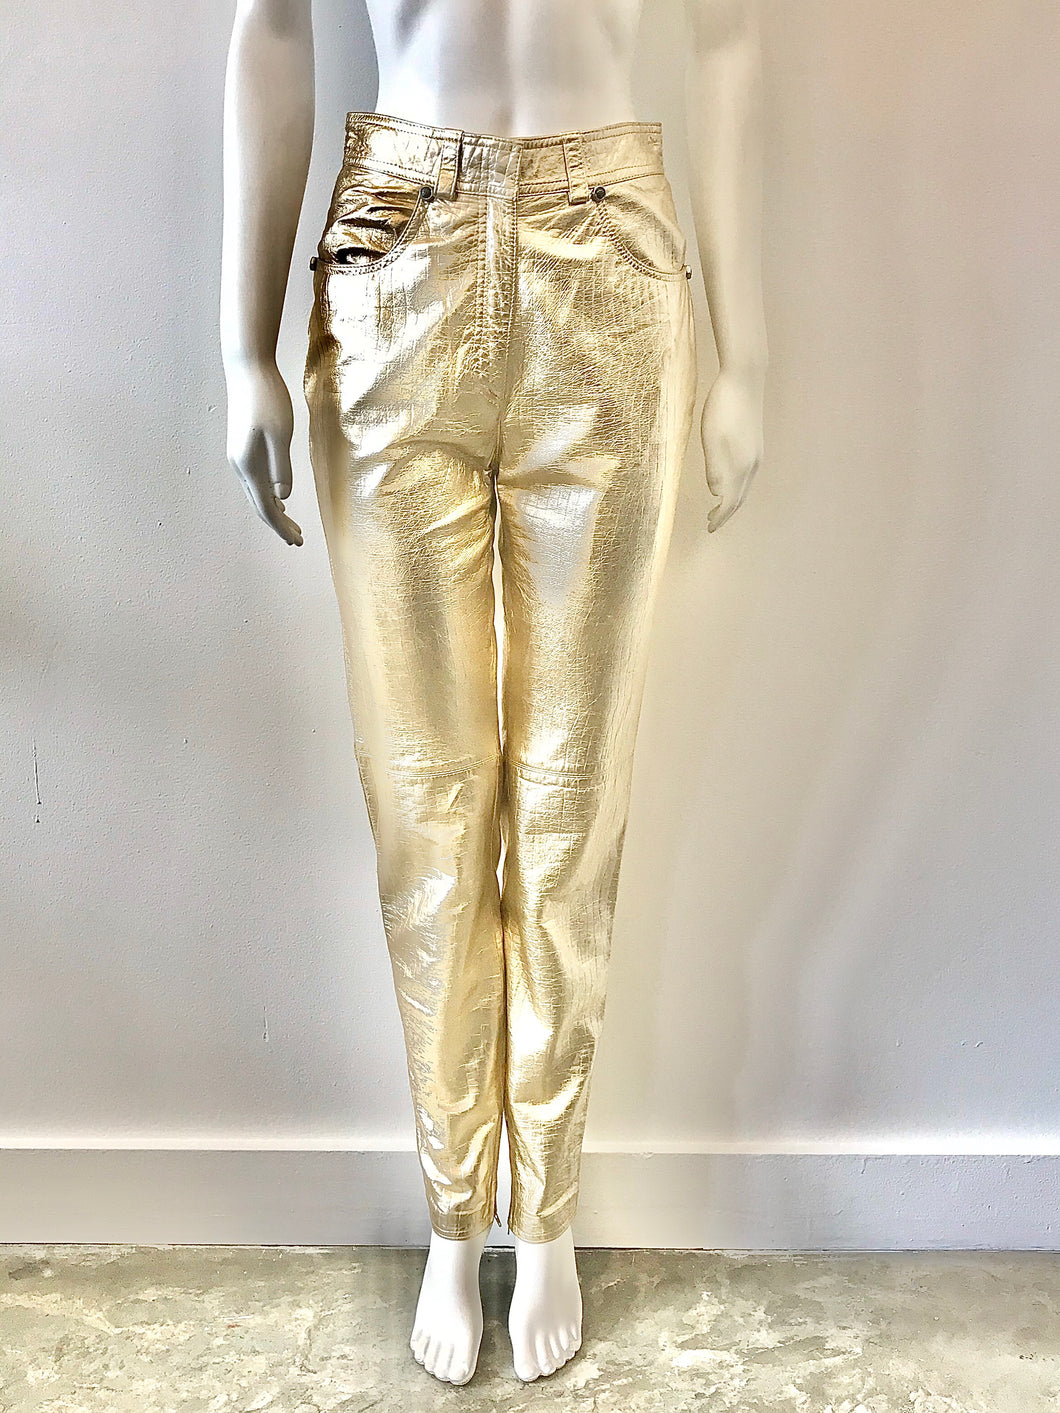 1980's Metallic Gold Reptile Print Leather Pants By Gianni Versace